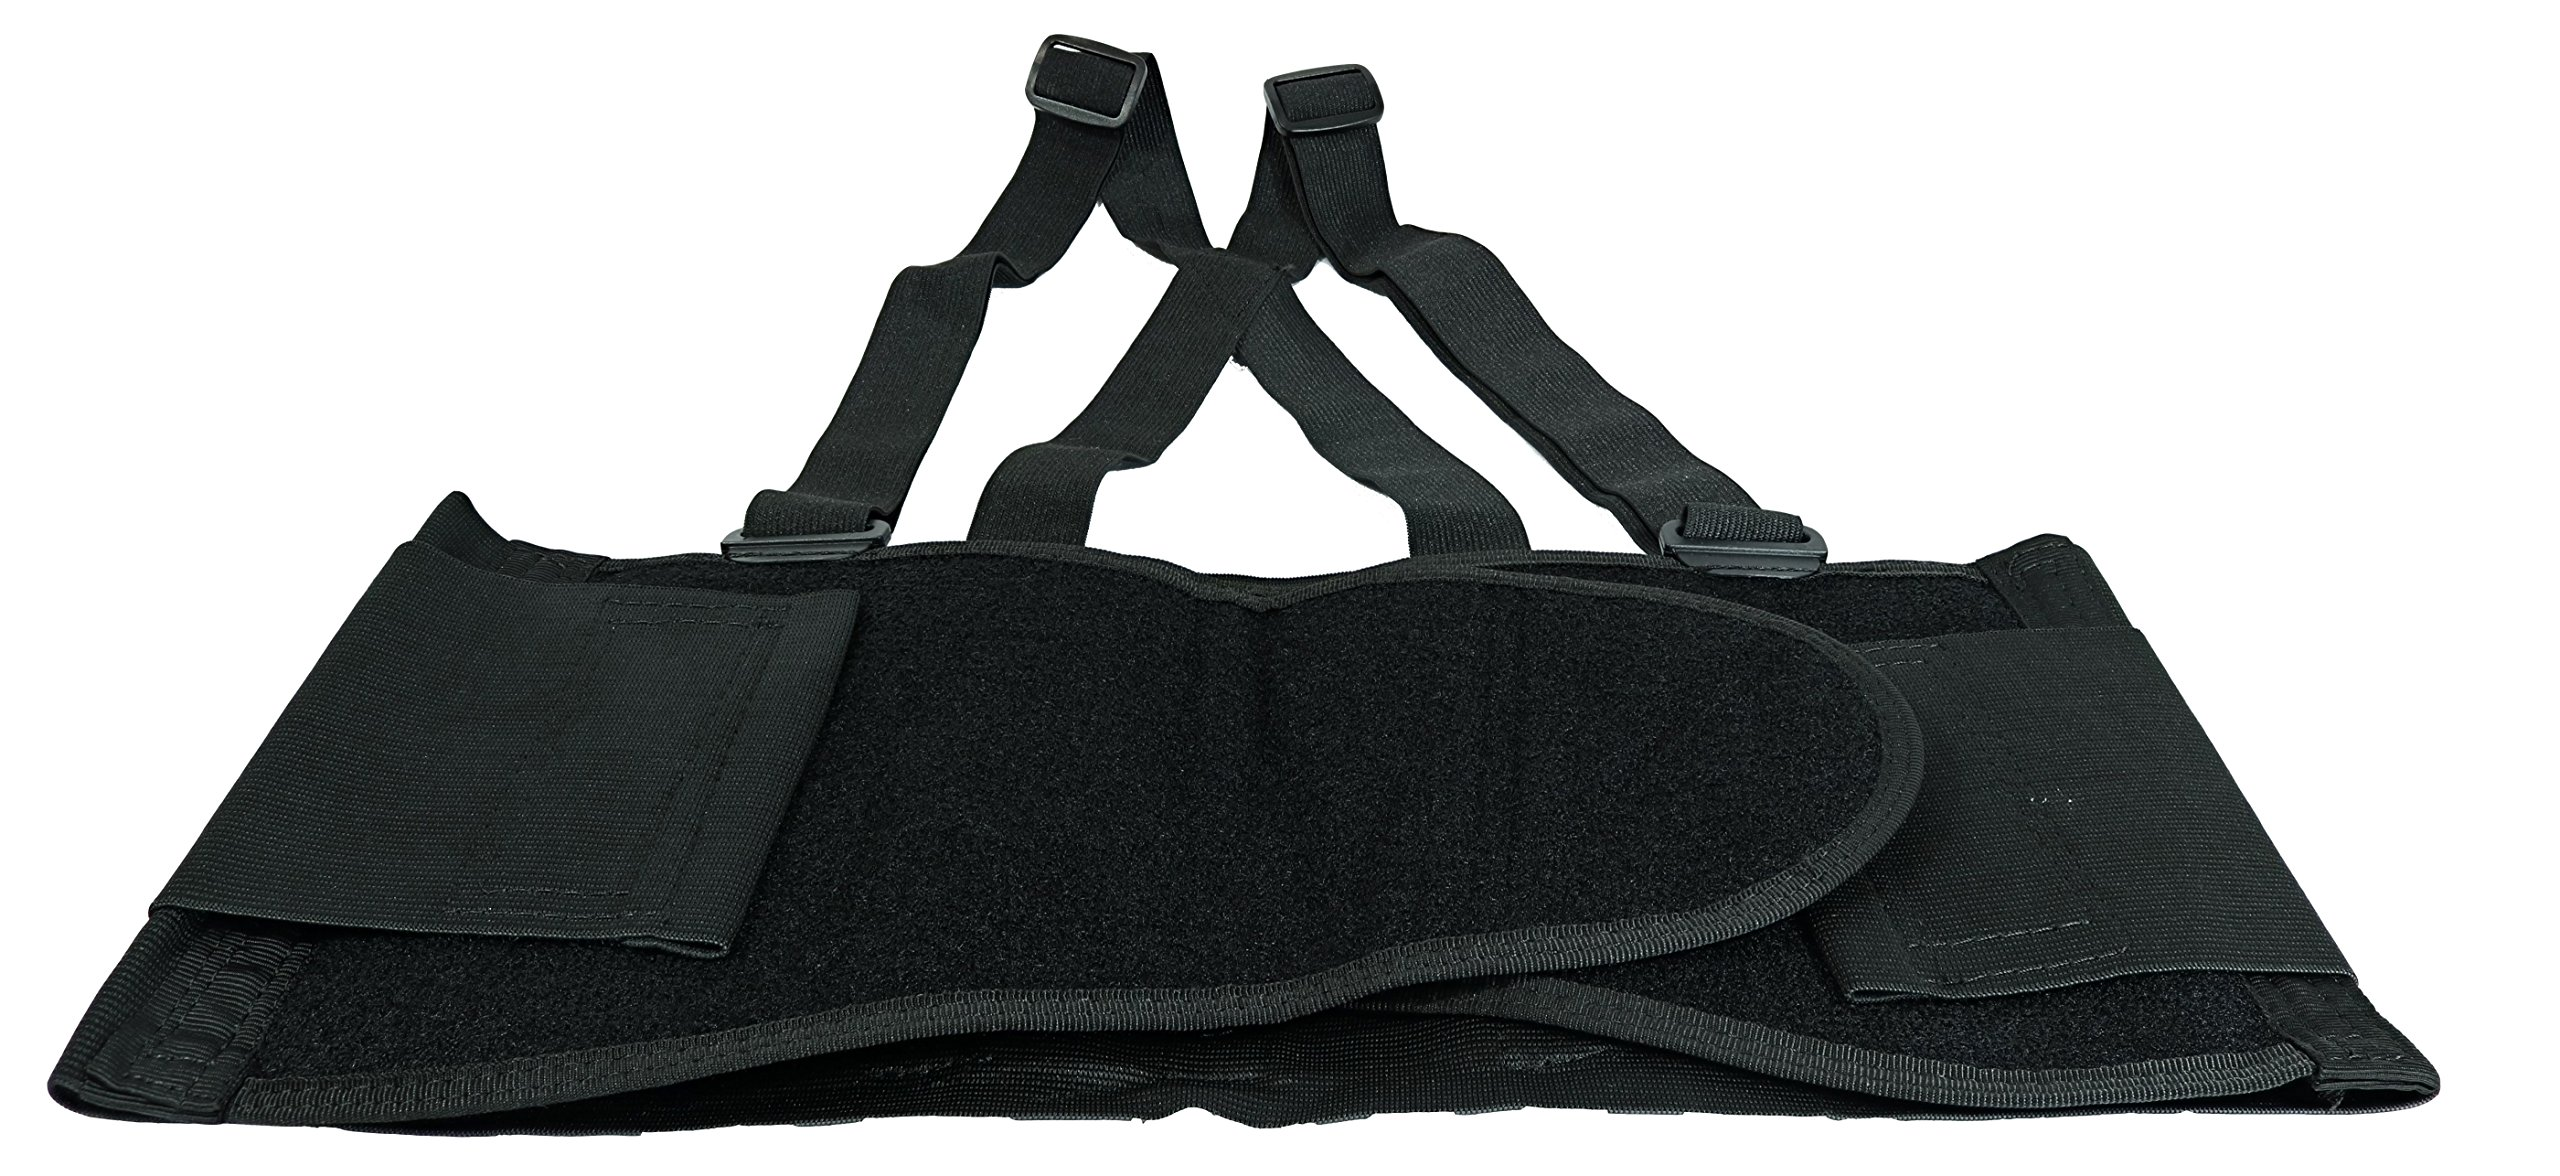 Husky Large Adjustable Hook and Loop Lumbar Support Belt With Adjustable Suspenders (Fits Waist Size 38'' to 47'')